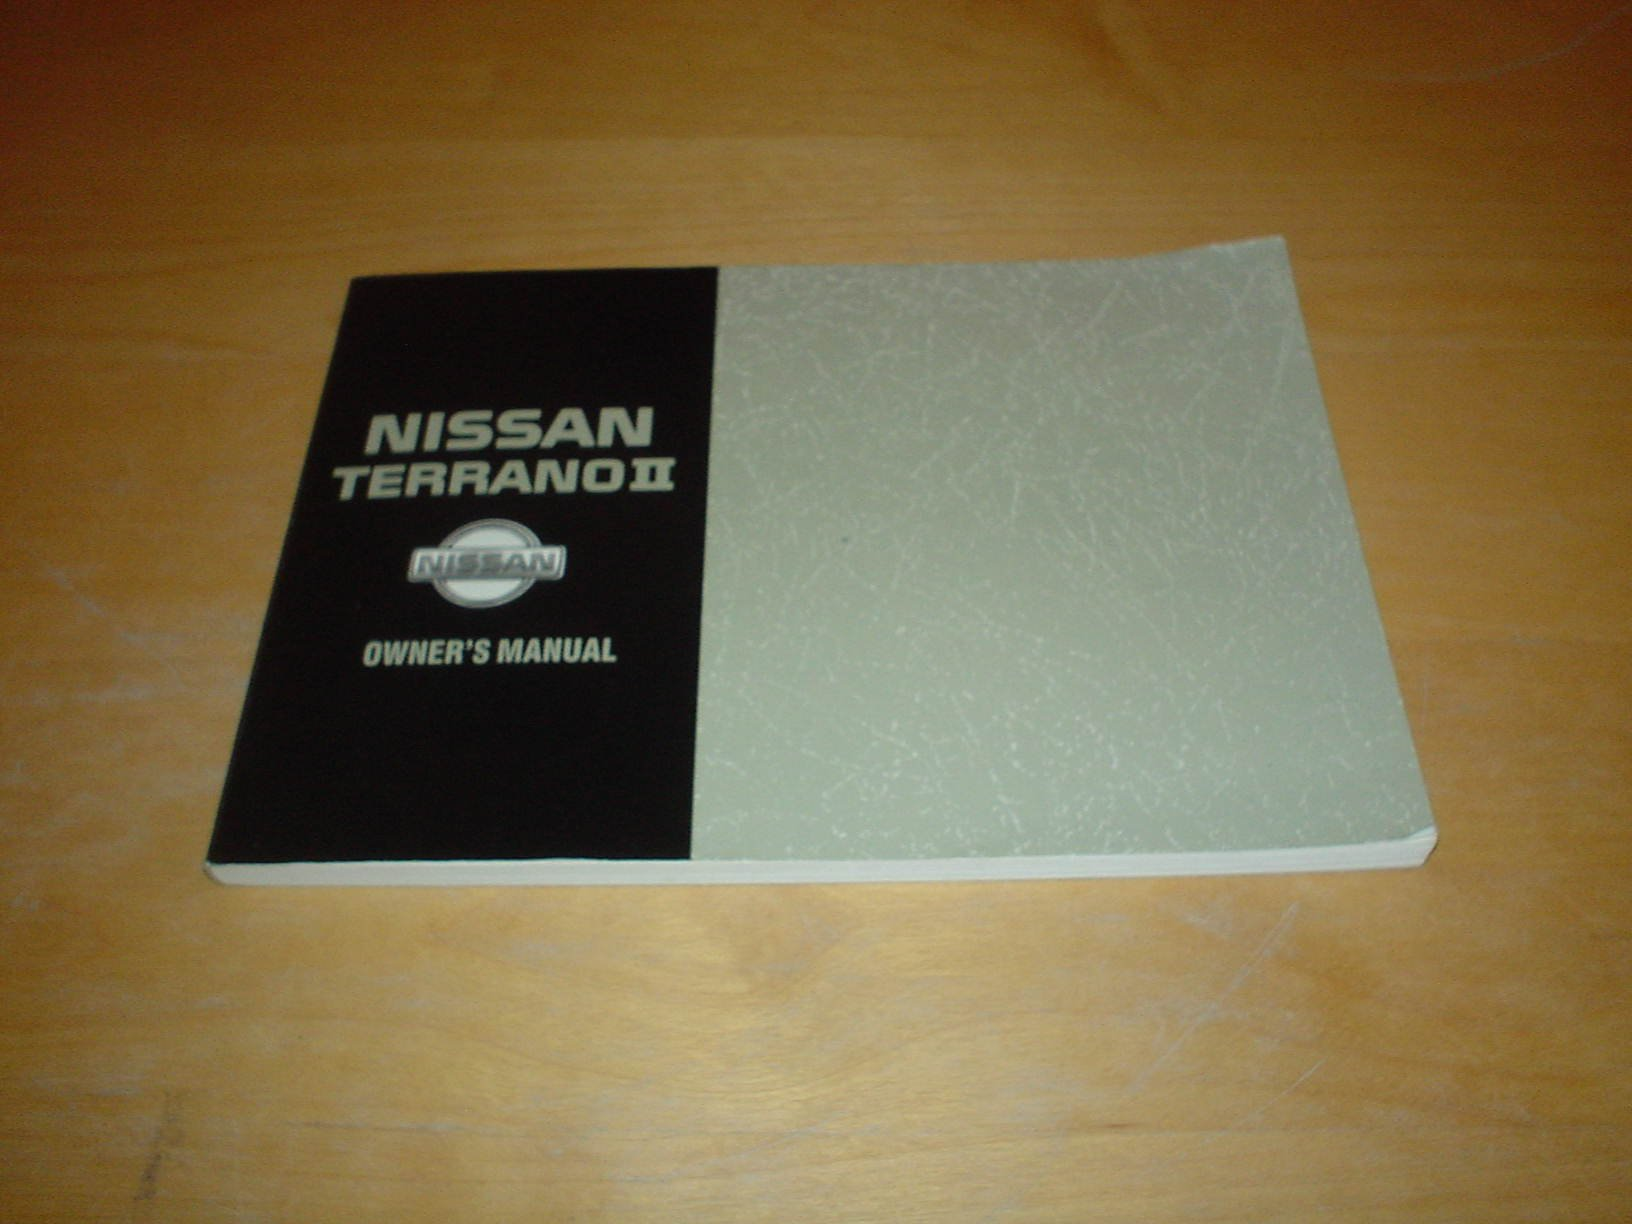 nissan terrano ii owners manual handbook 2 4 2 7 litre engine rh amazon co uk nissan terrano ii owners manual nissan terrano 2 service manual download